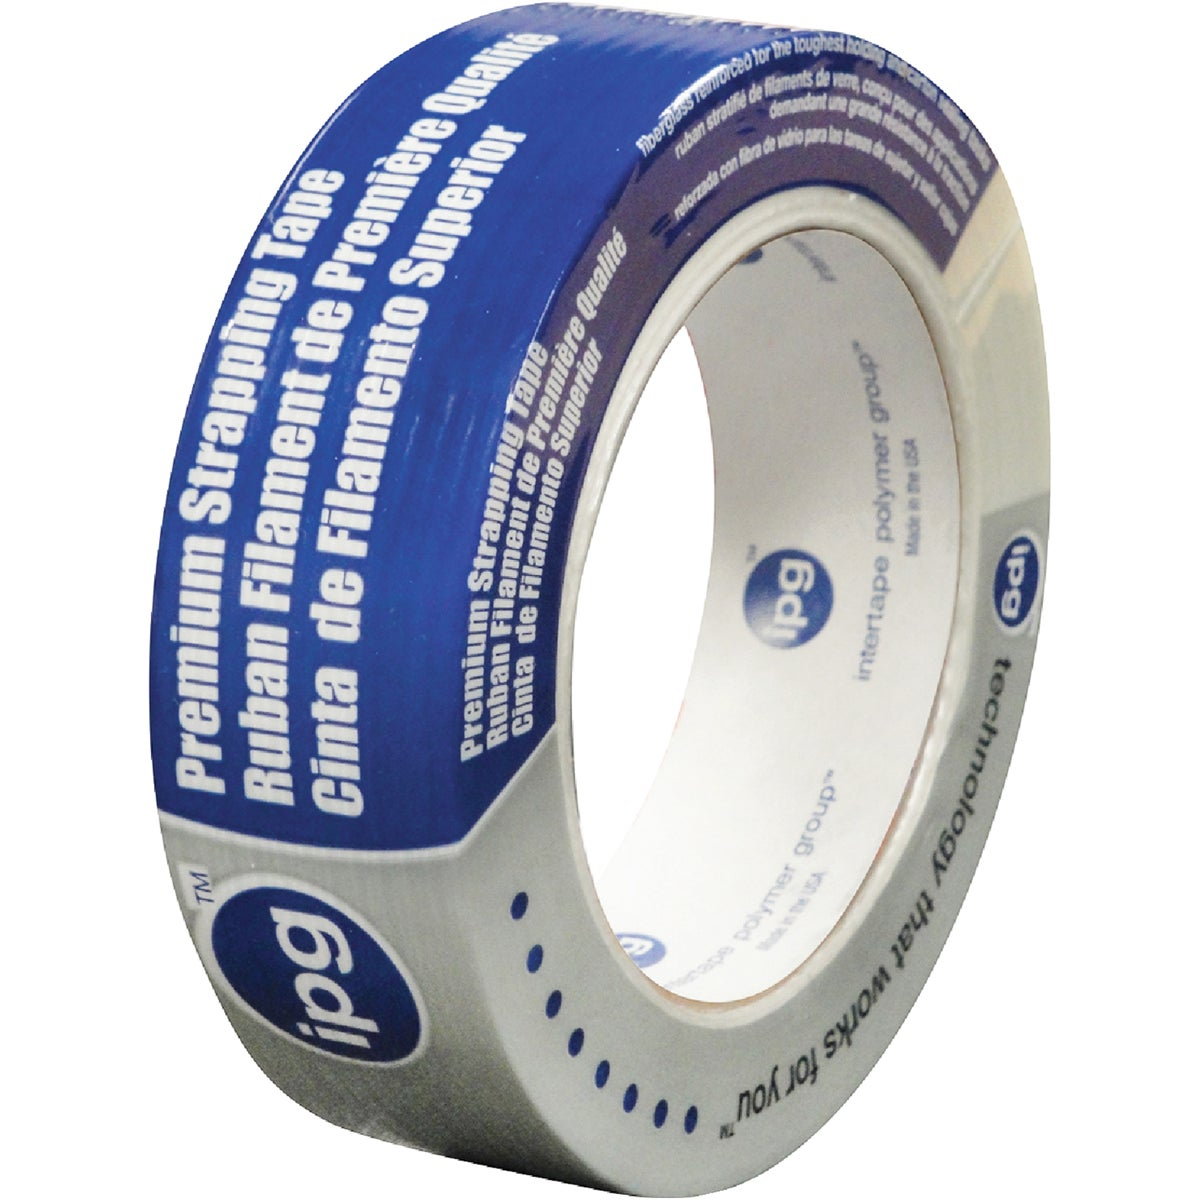 1-1/2X60 STRAPPING TAPE - 9717 by Intertape Polymer